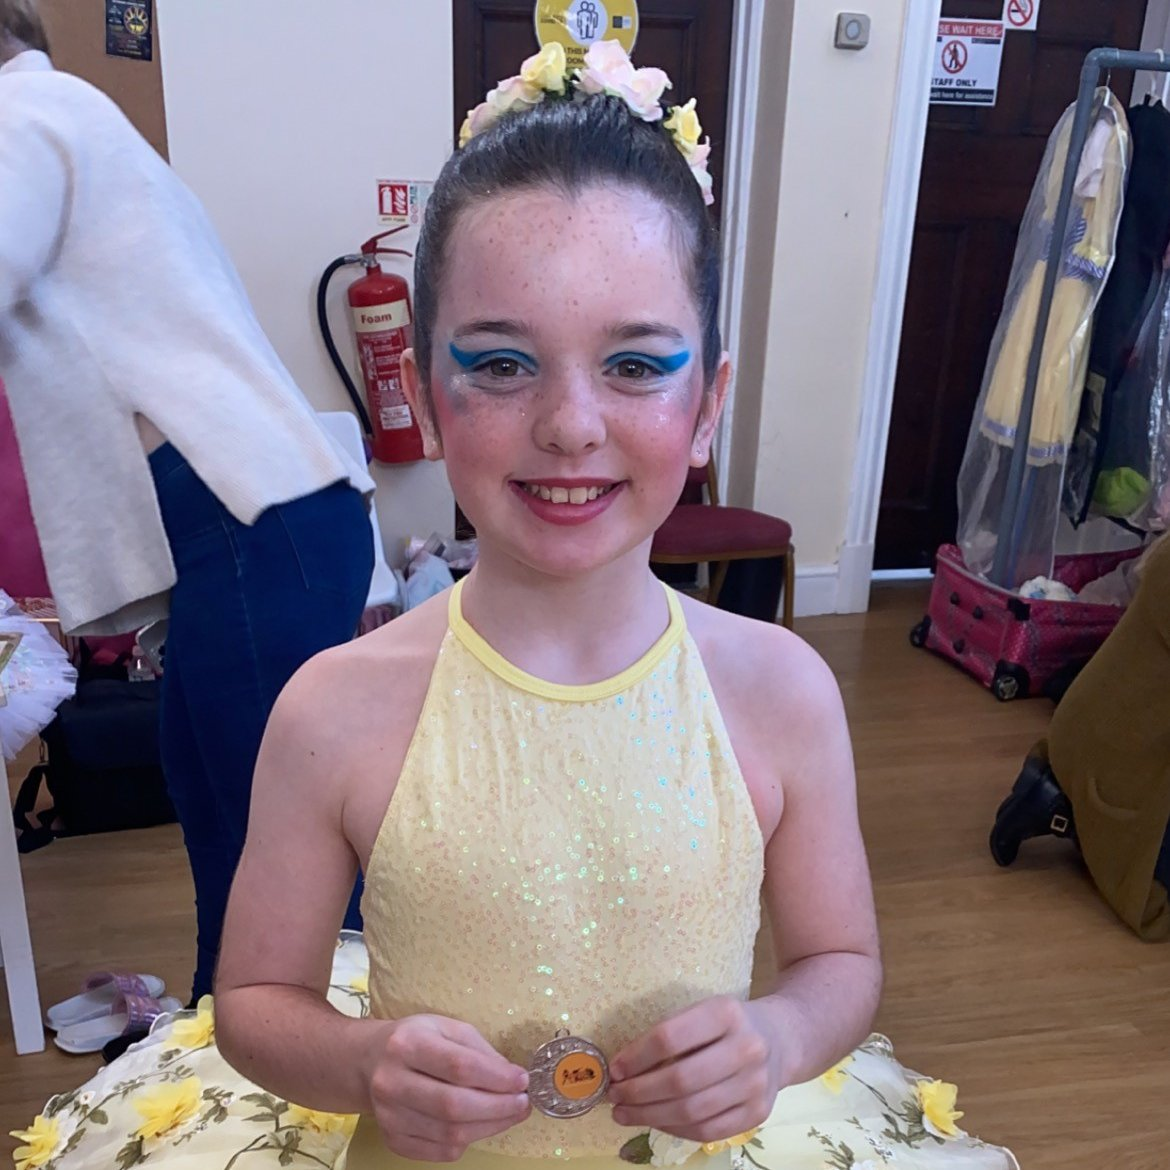 ❤️ Student Success! We'd like to say a HUGE well done to our student, Ruby, who came second in every solo #dance competition she entered last weekend. 💃 What an awesome achievement! 🙌 #FoundingMember